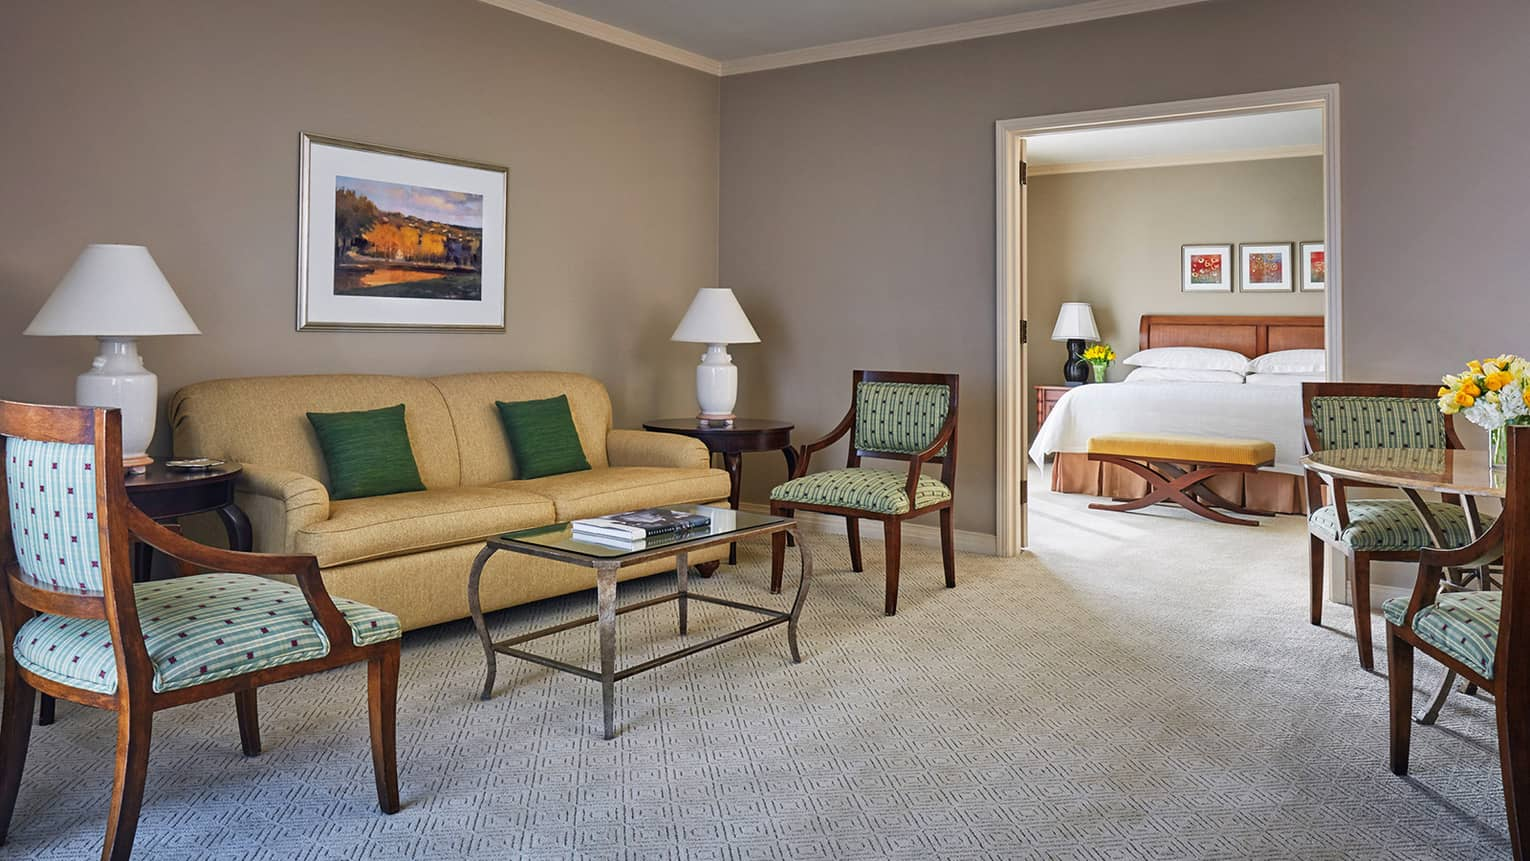 Four Seasons Executive Suite beige sofa, accent chairs, table by door to bedroom